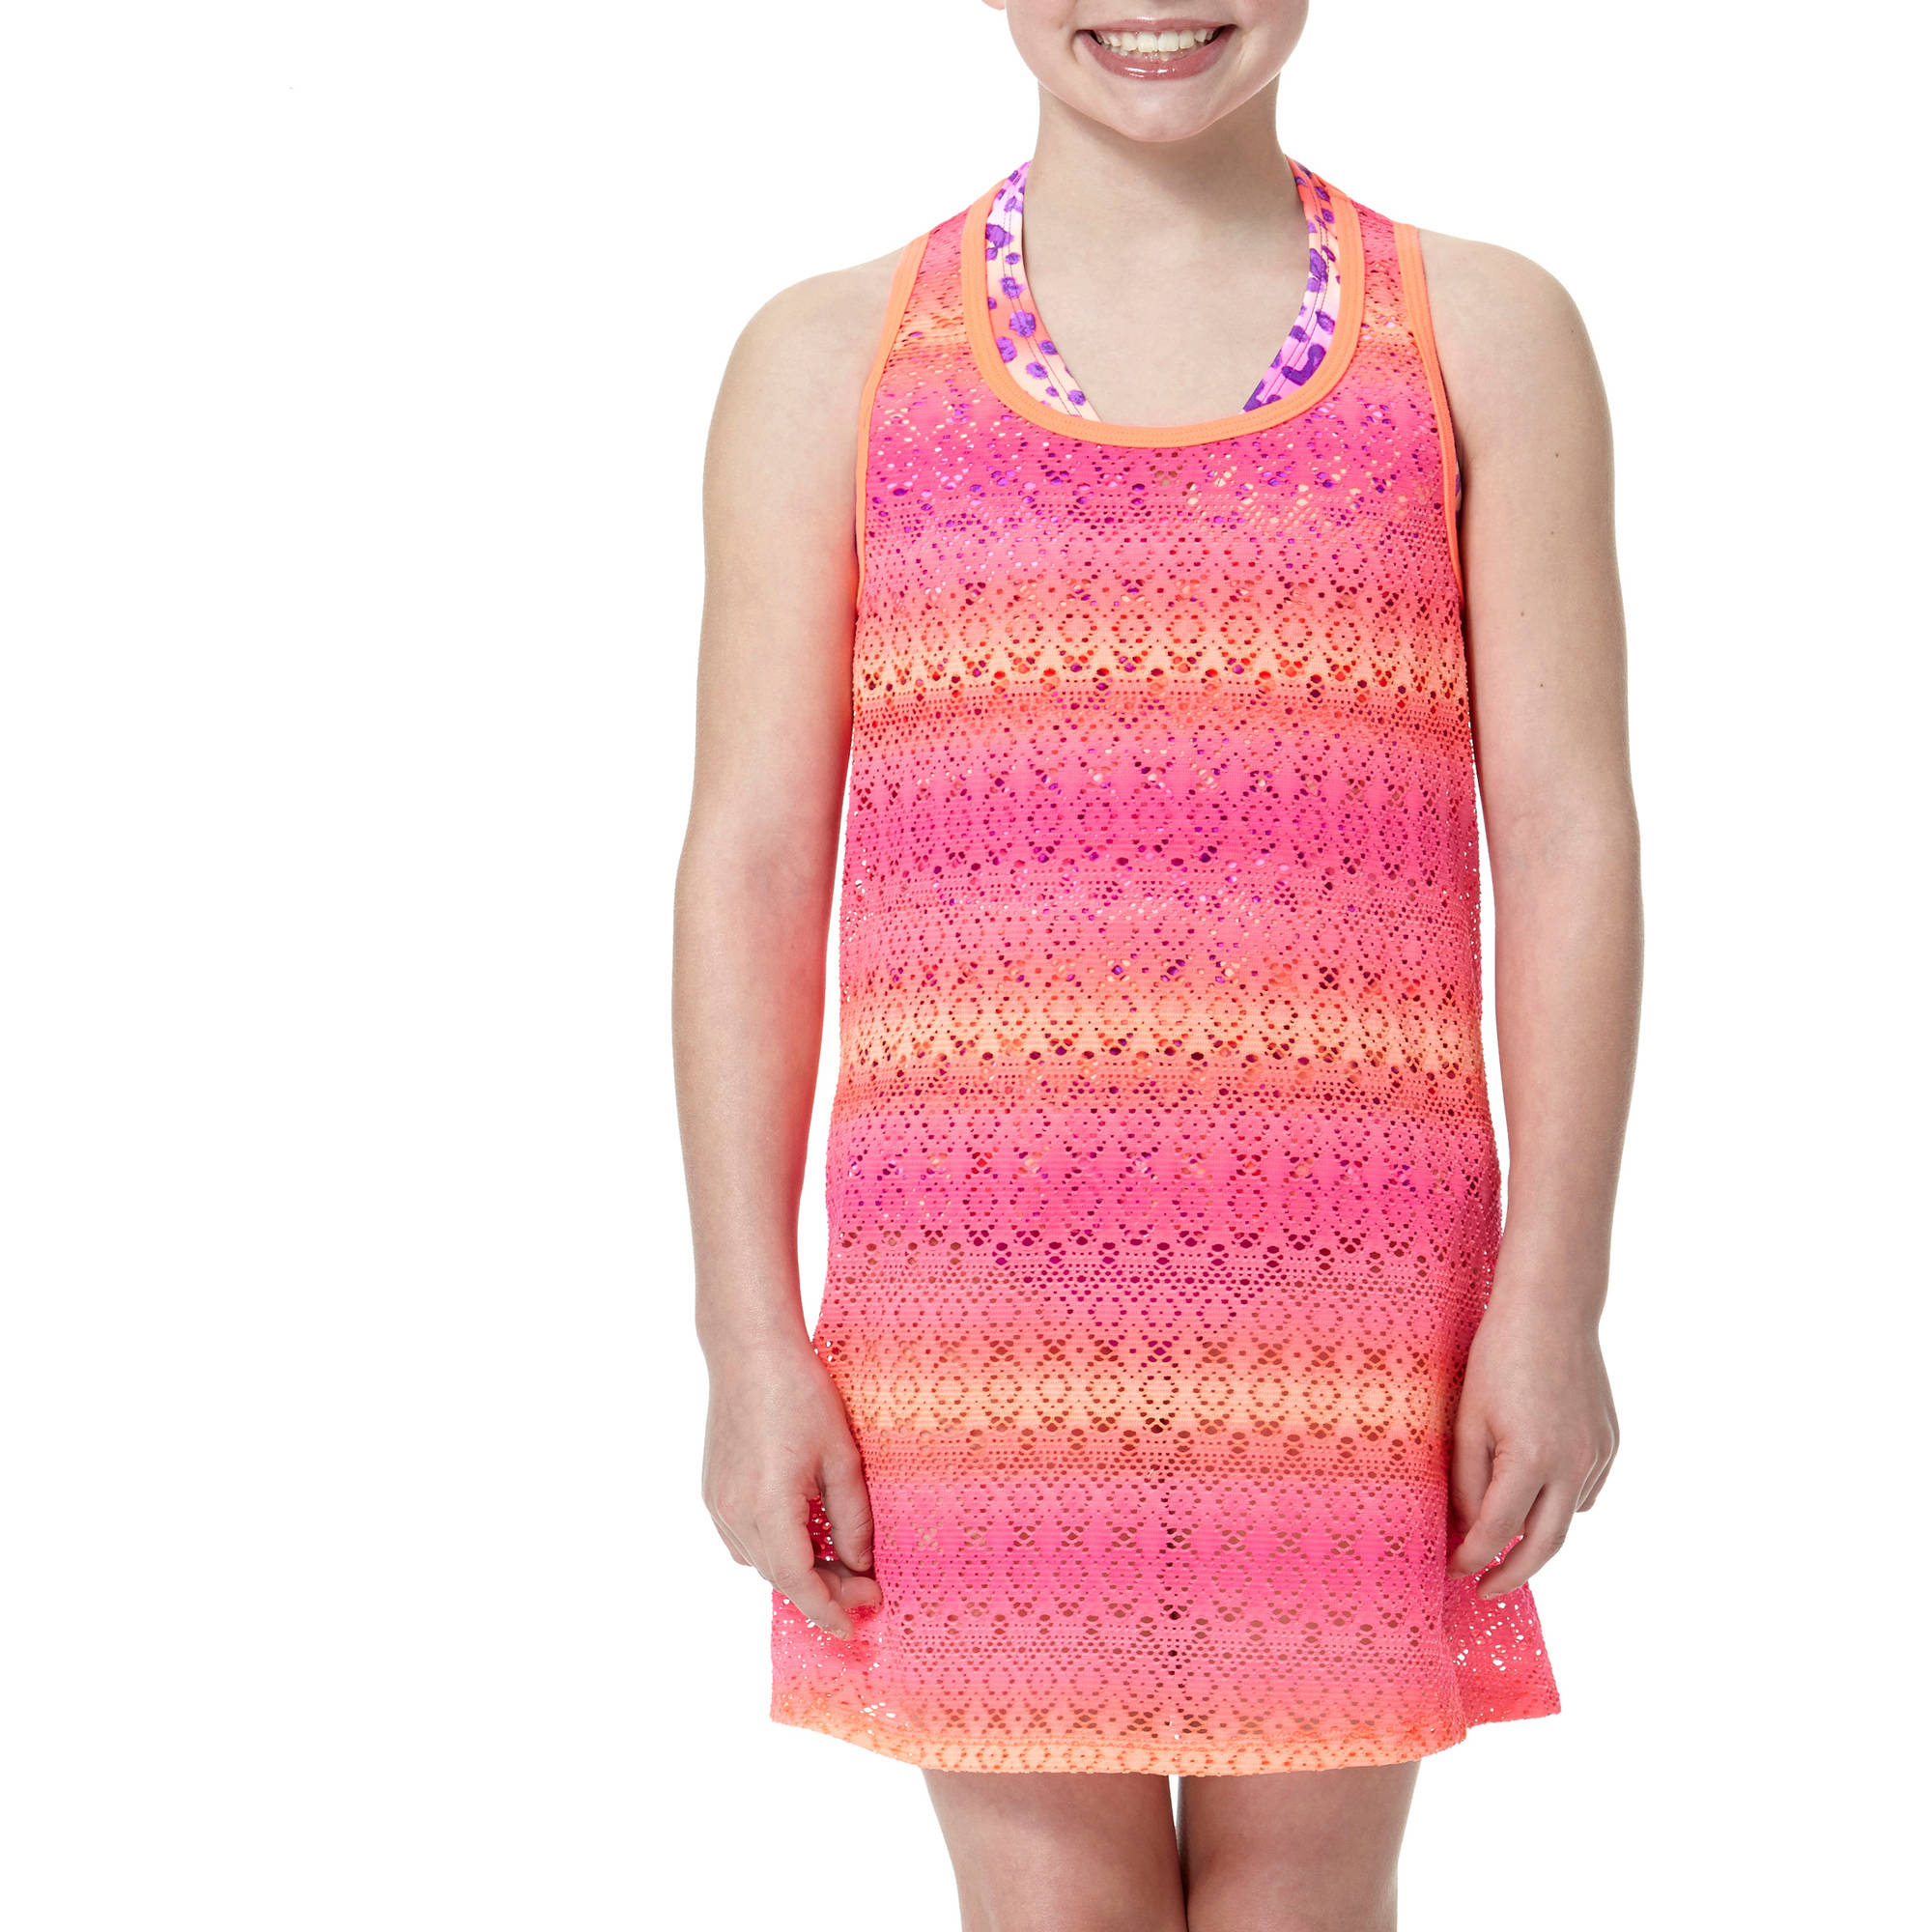 OP Girls' Swimsuit Crochet Cover Up